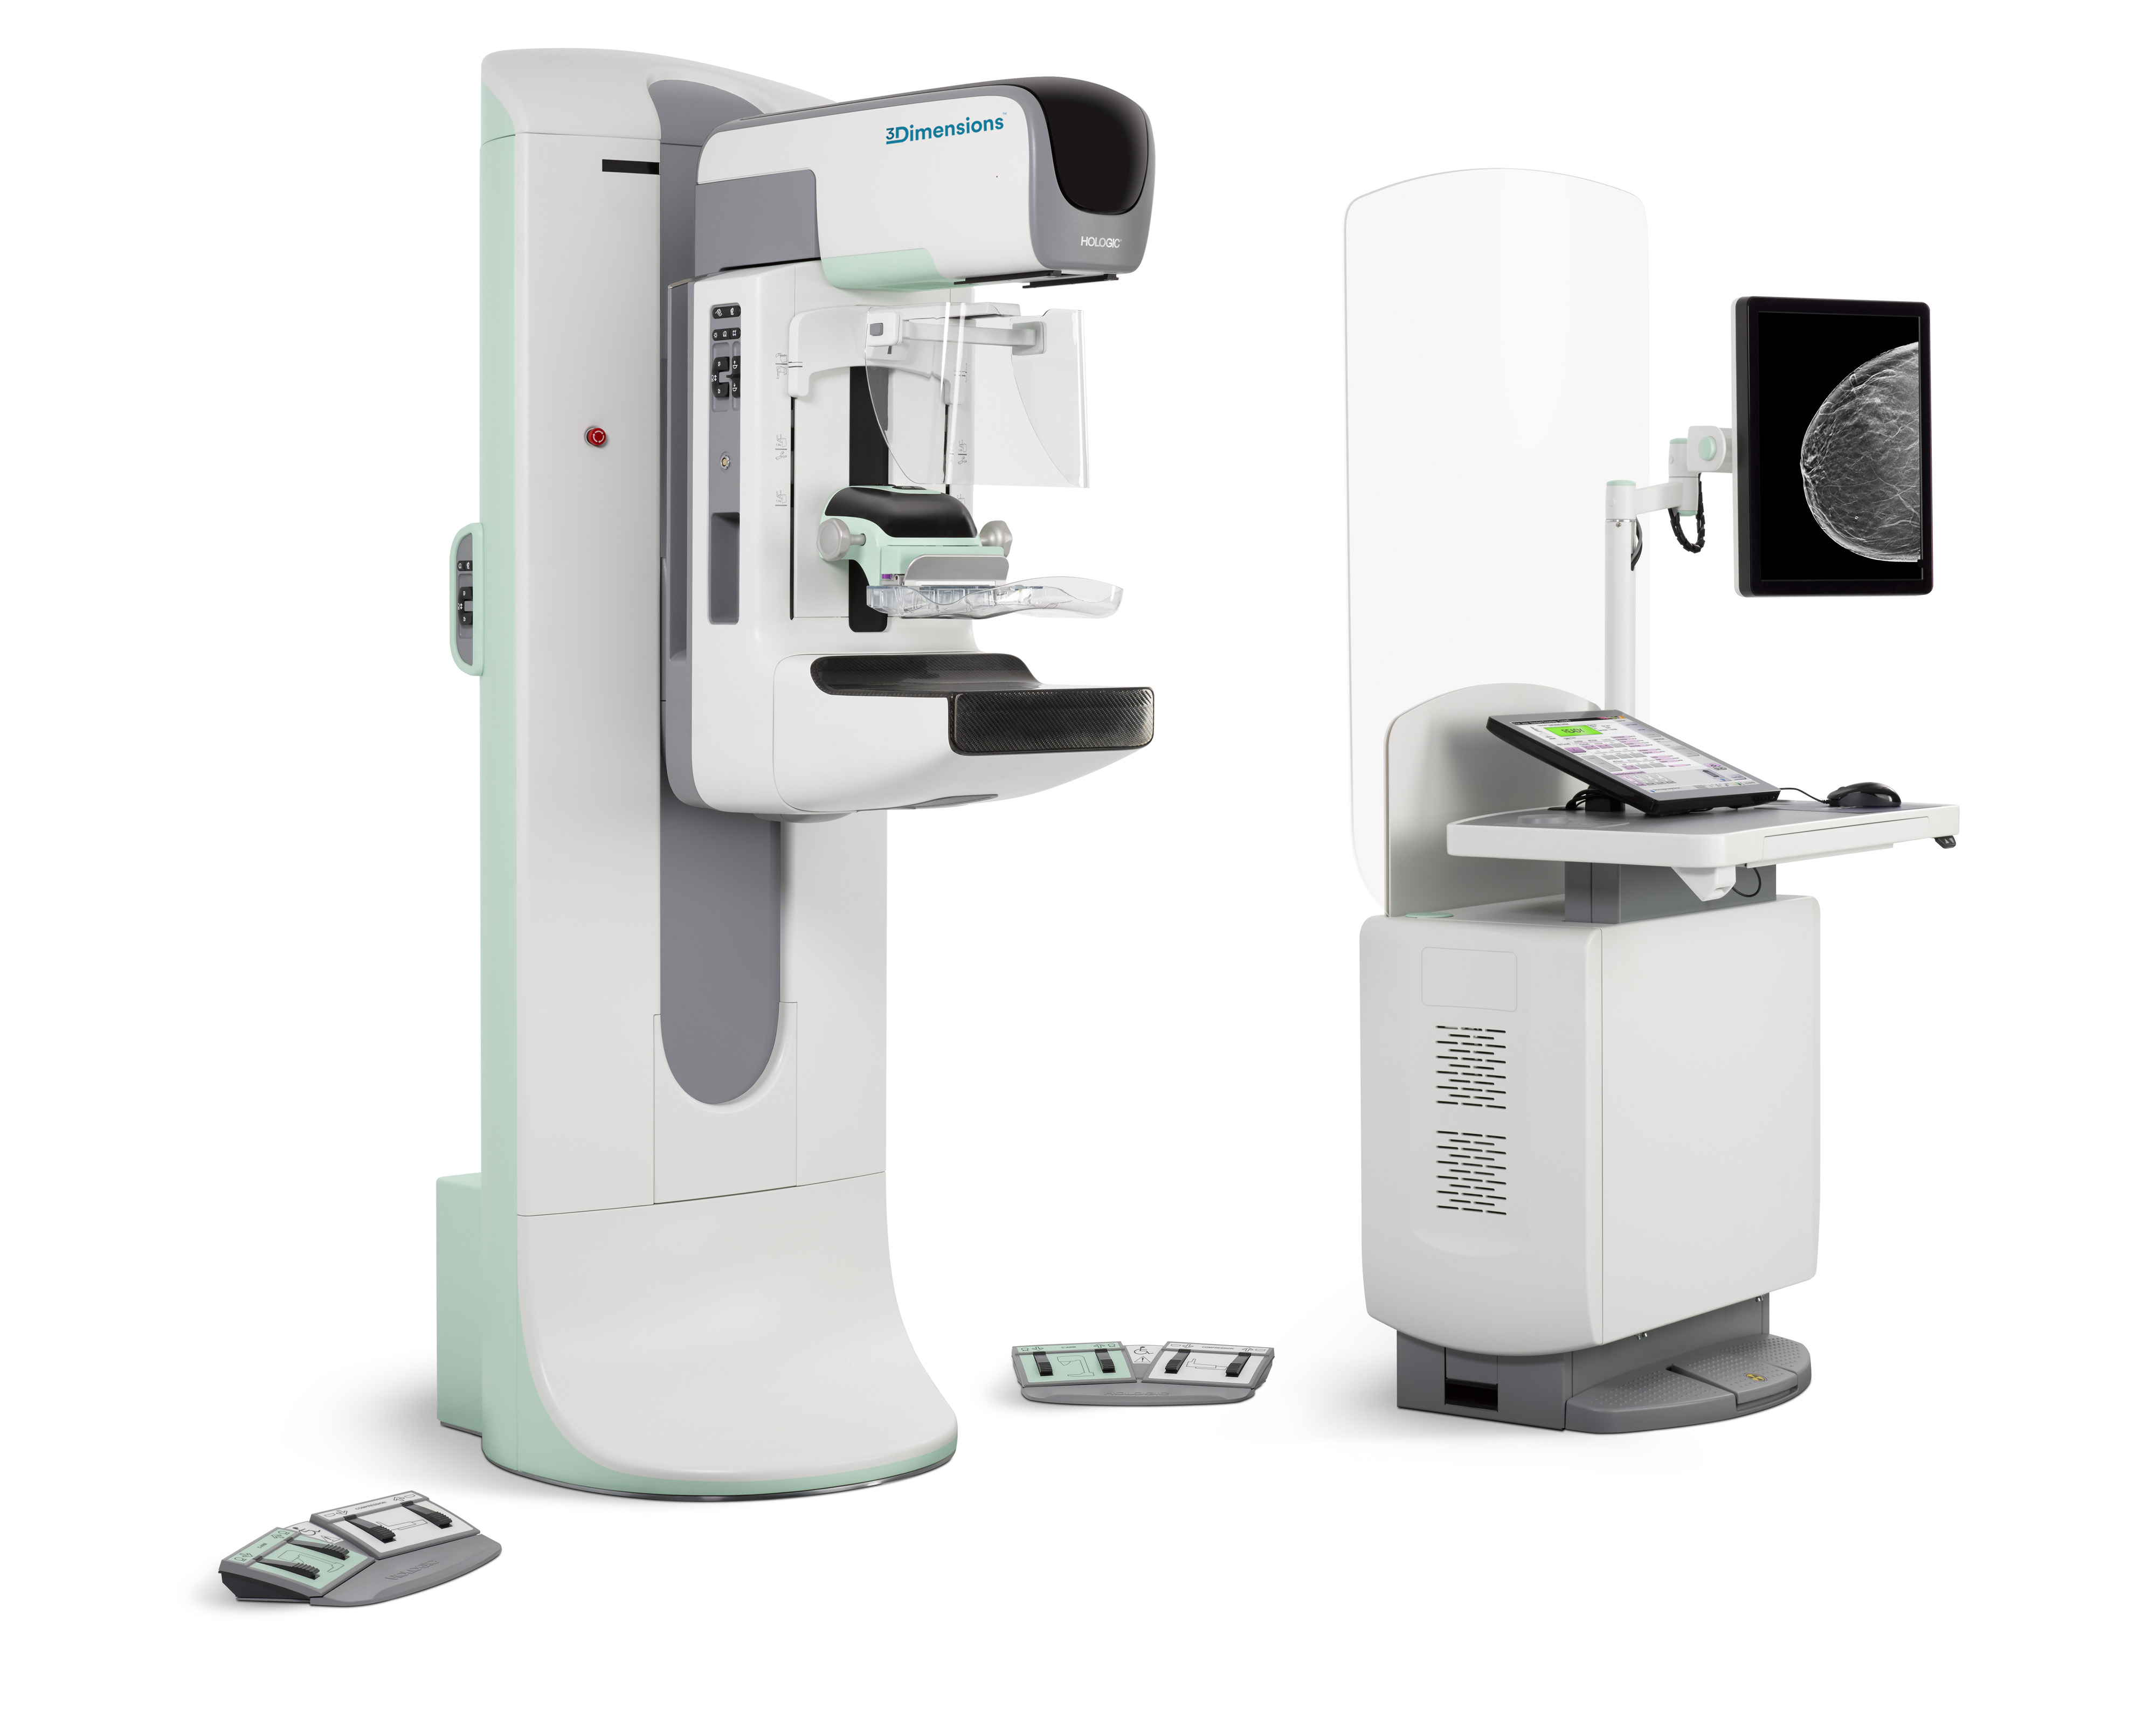 FDA Approves Innovations on Hologic's 3Dimensions™ Mammography System